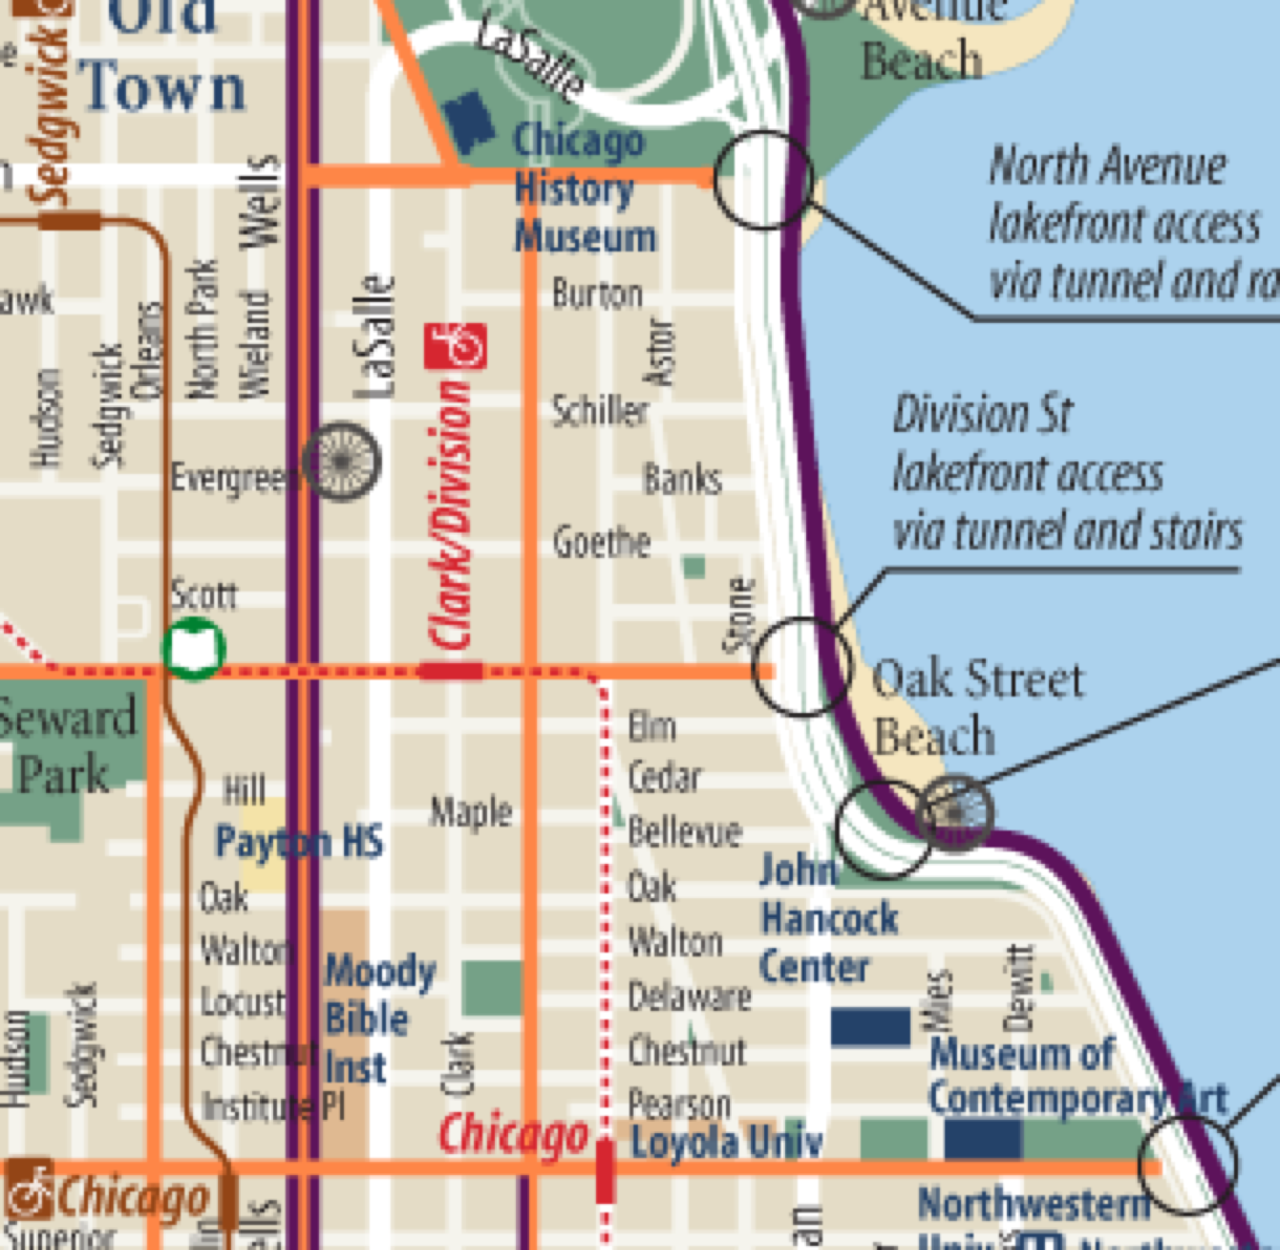 Bike Chicago Map line on the bike map